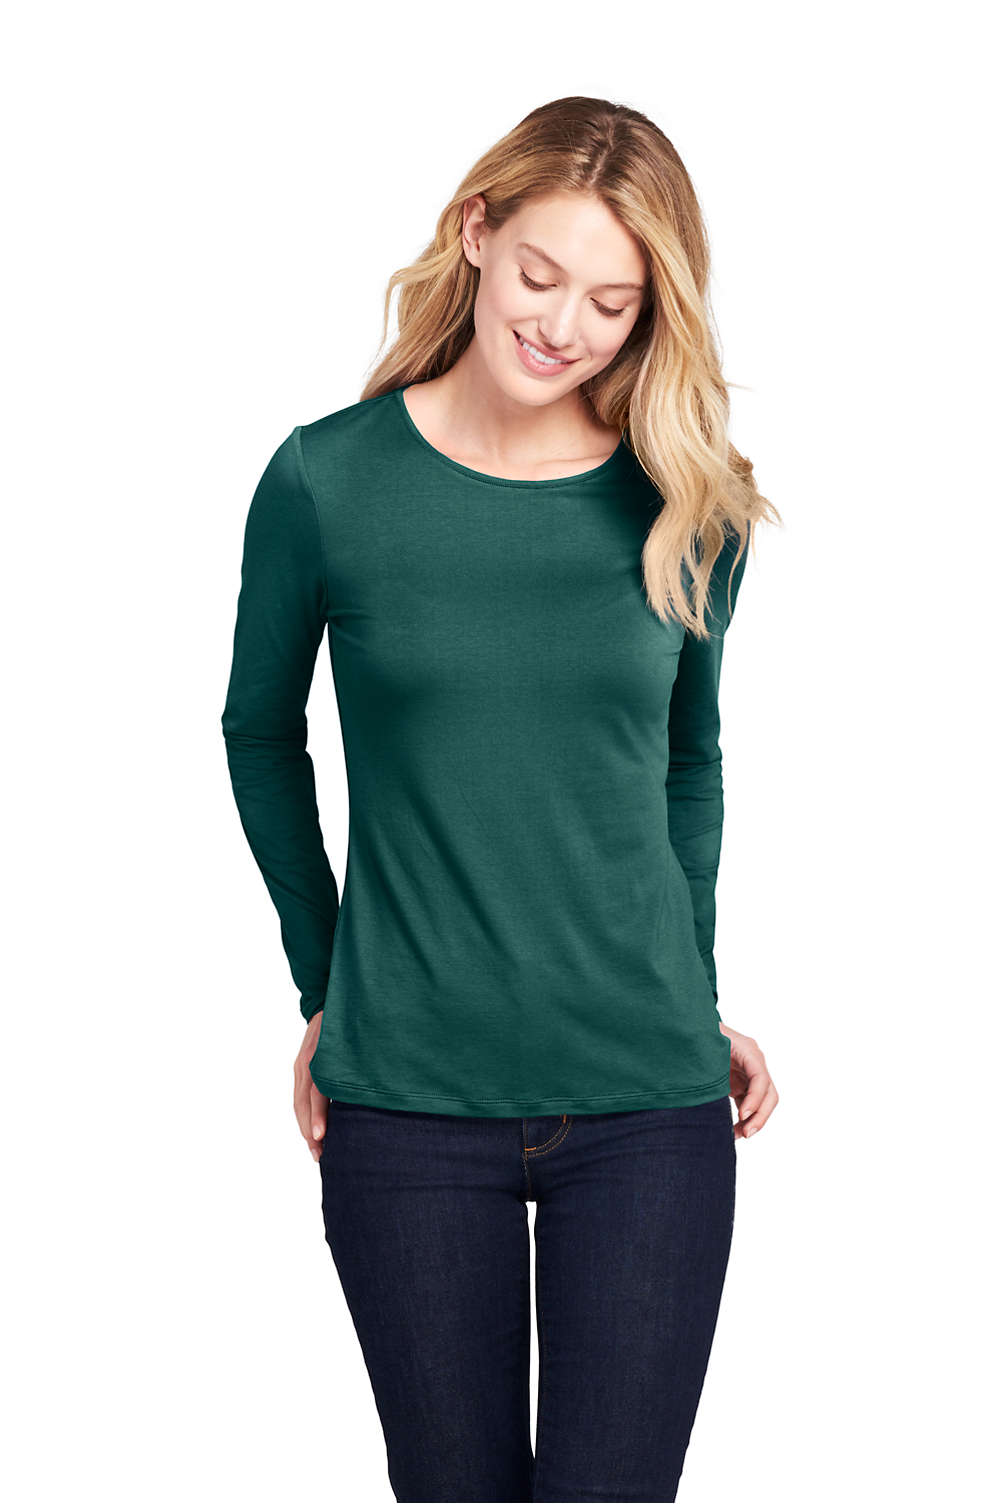 3311055e8582 Women's Lightweight Fitted Long Sleeve T-Shirt - Shaped Layering Crewneck  from Lands' End